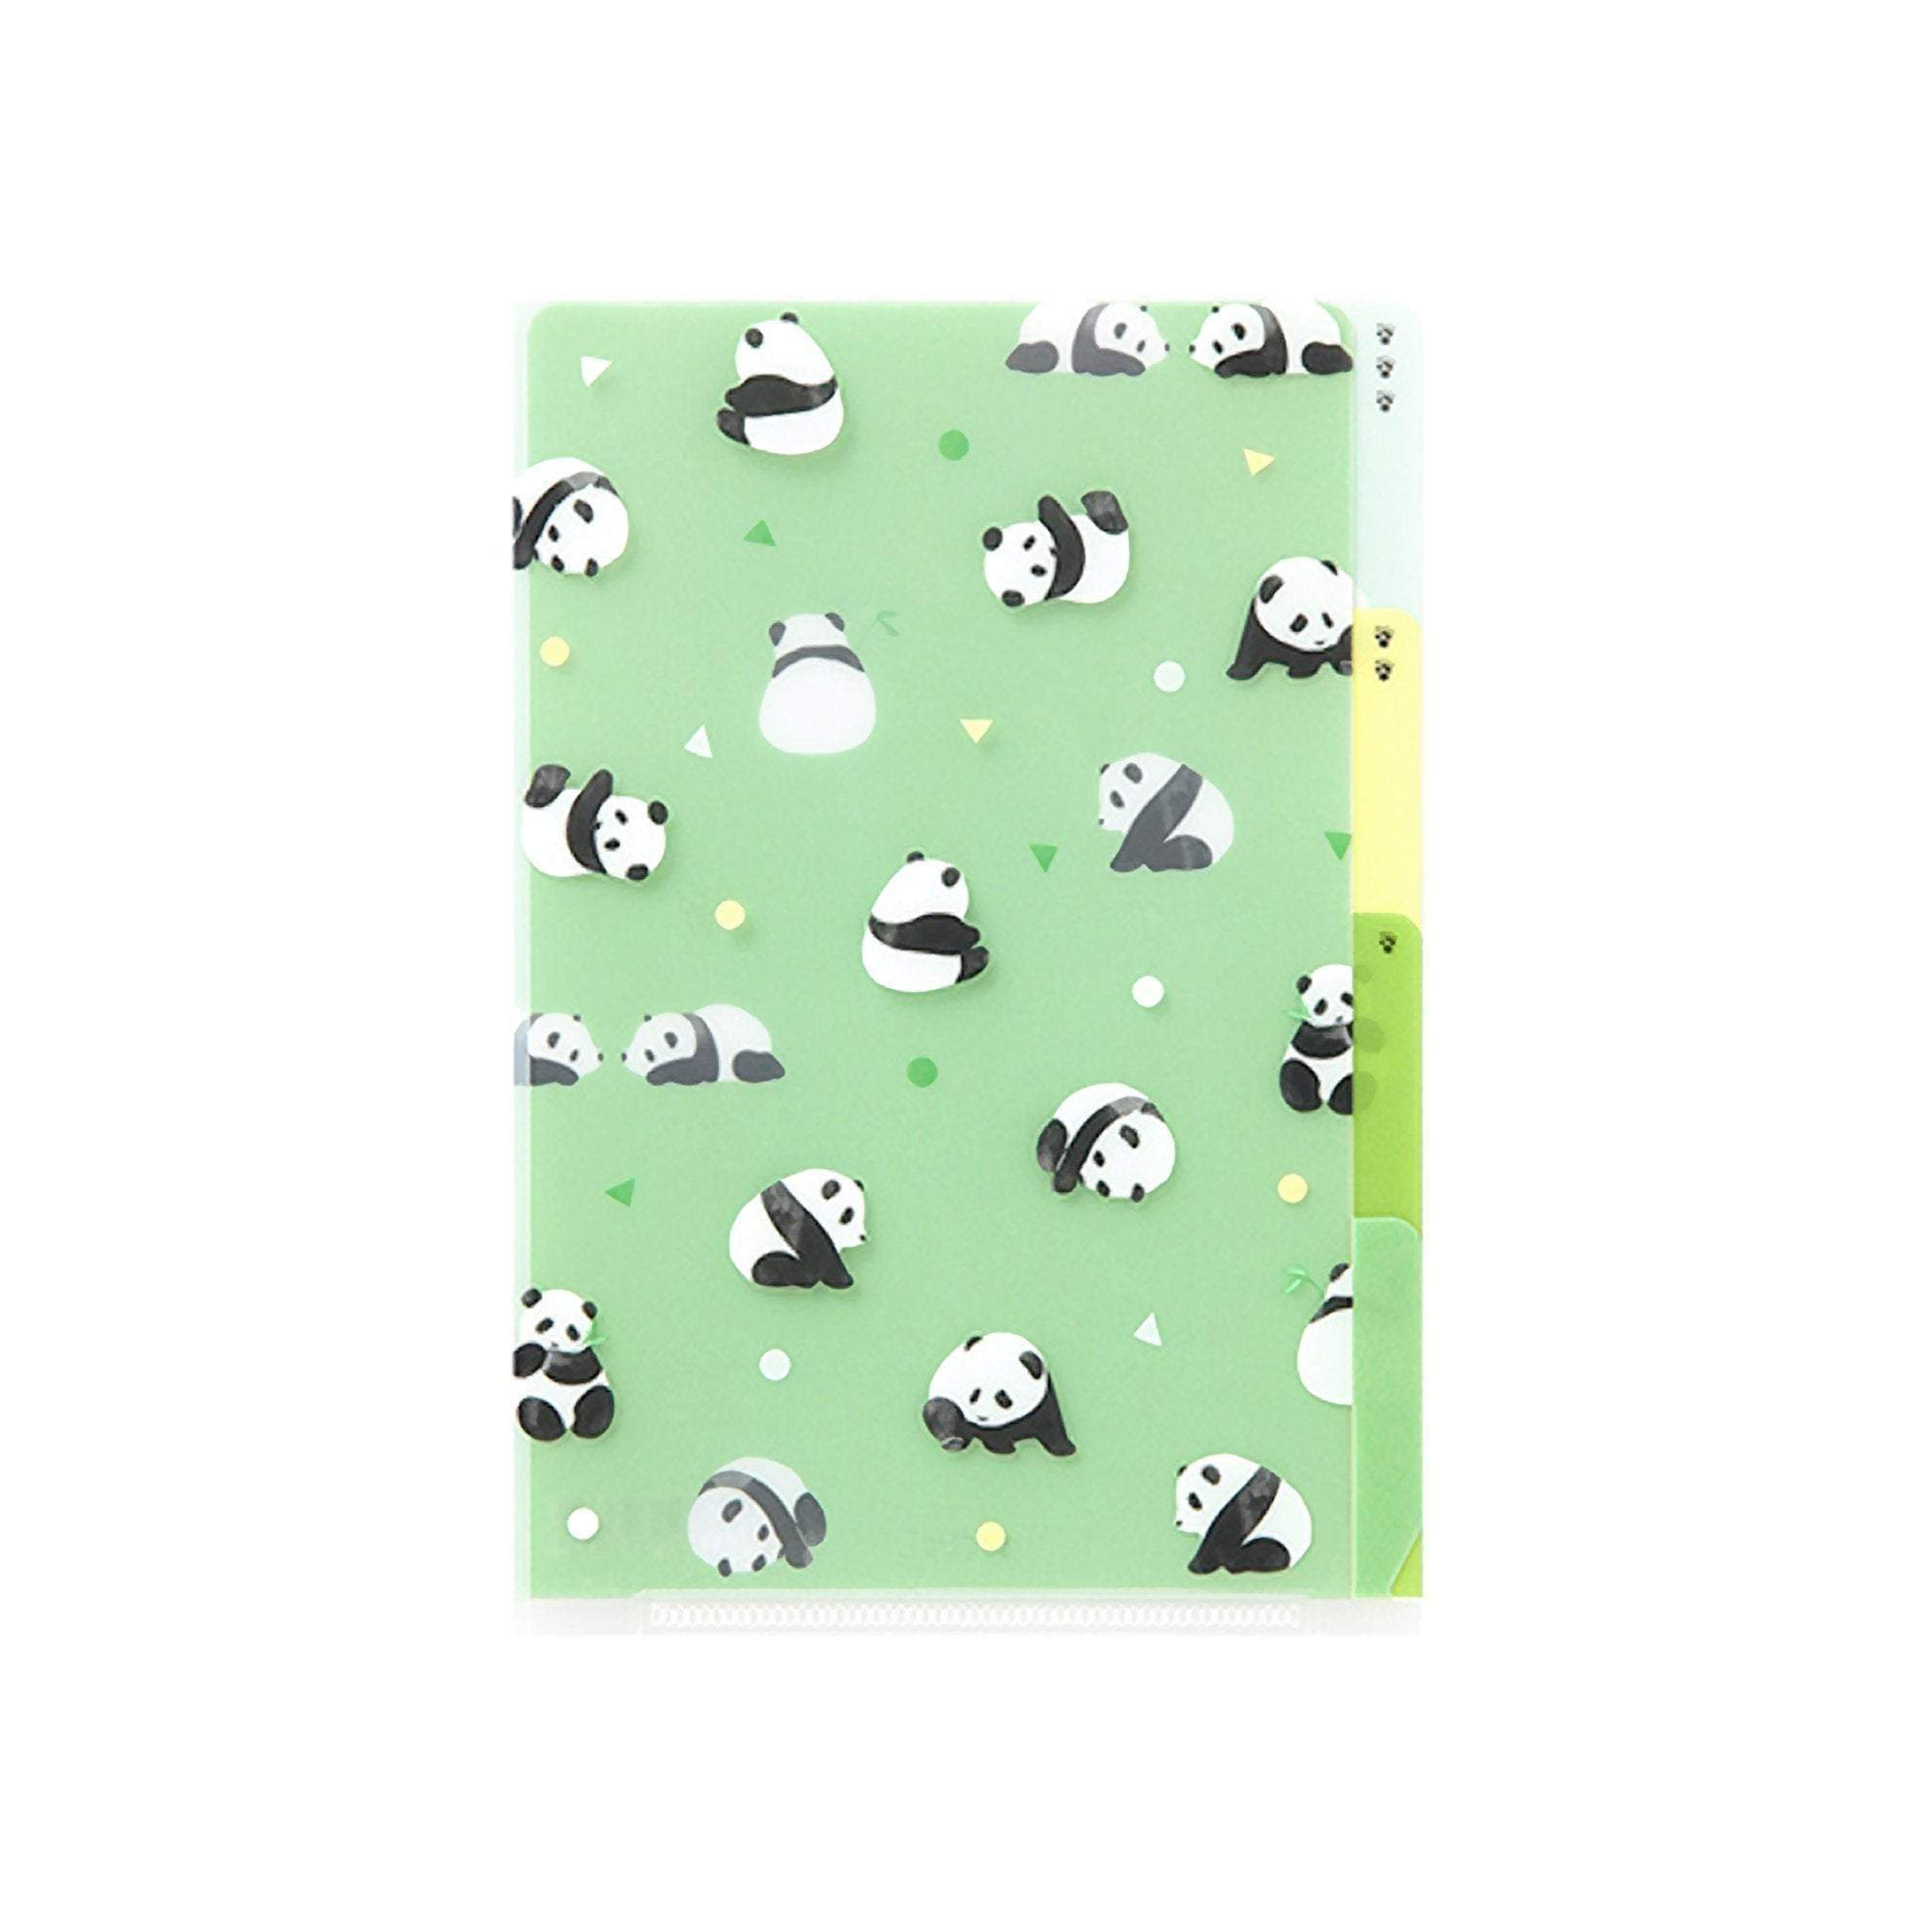 Midori MD A6 3 Pocket Clear Folder | Panda Kawaii - The Stationery Life!